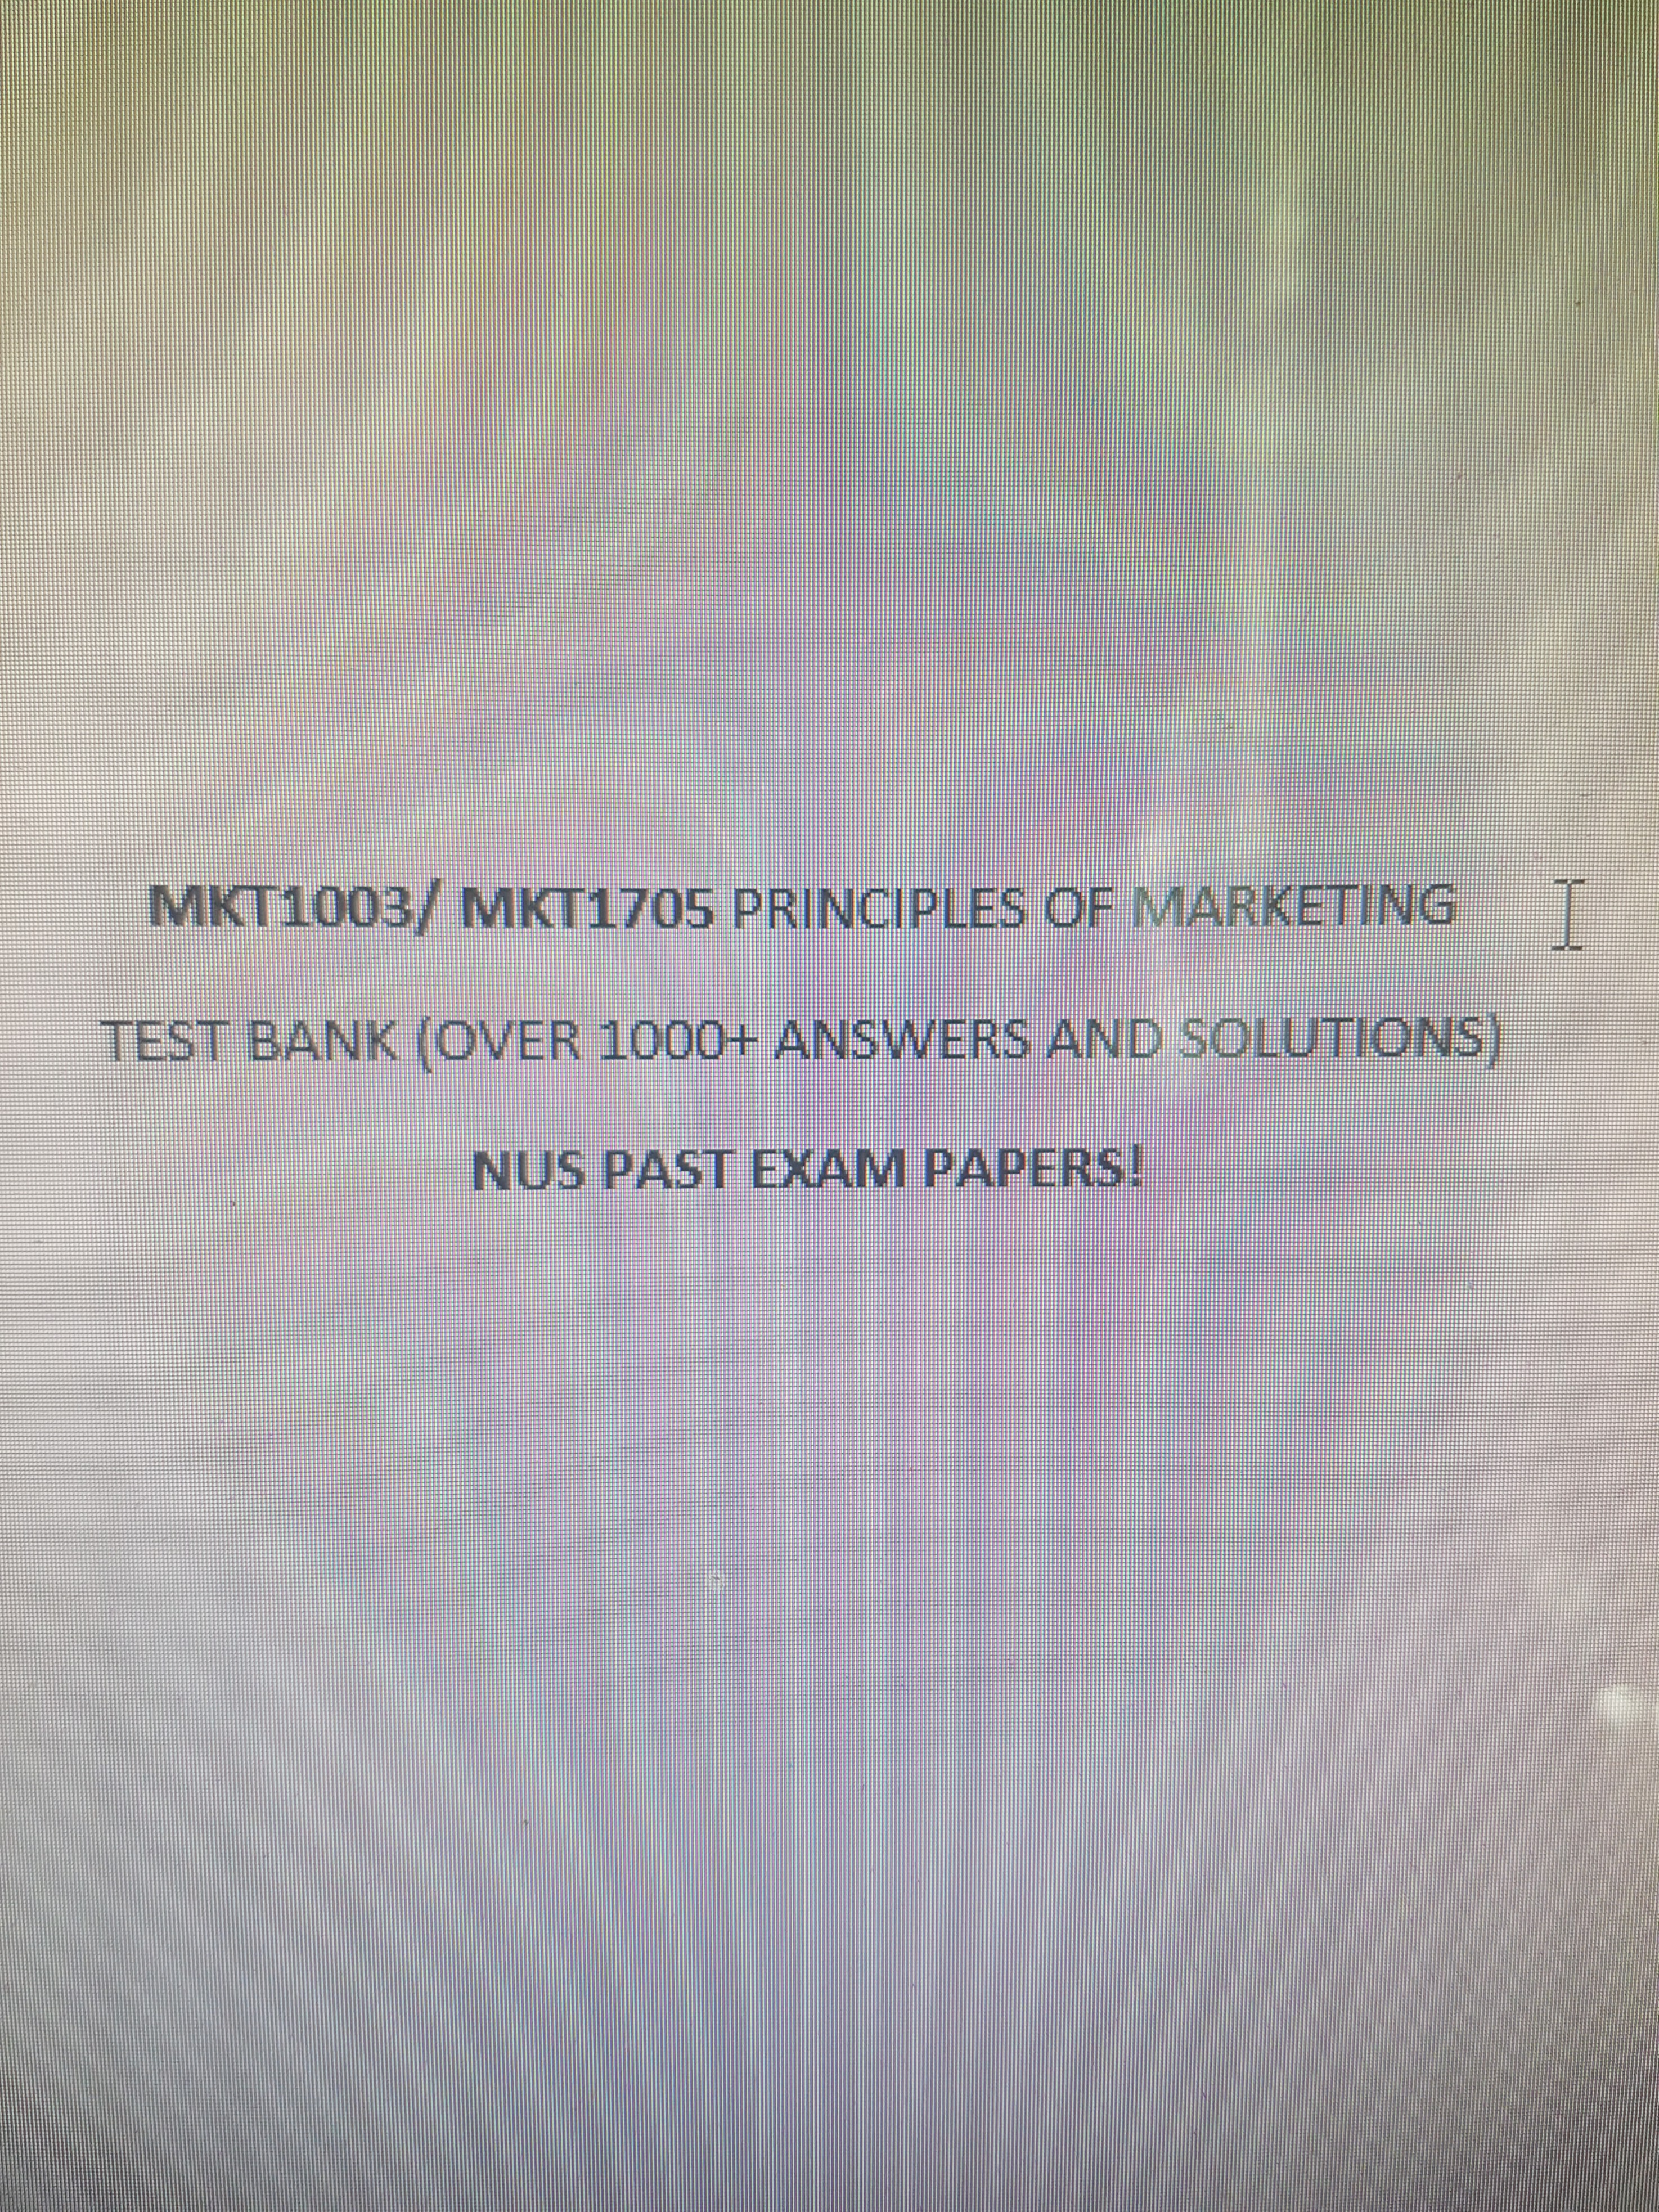 Mkt1705 Past Exam Papers Test Bank Solutions Books Stationery